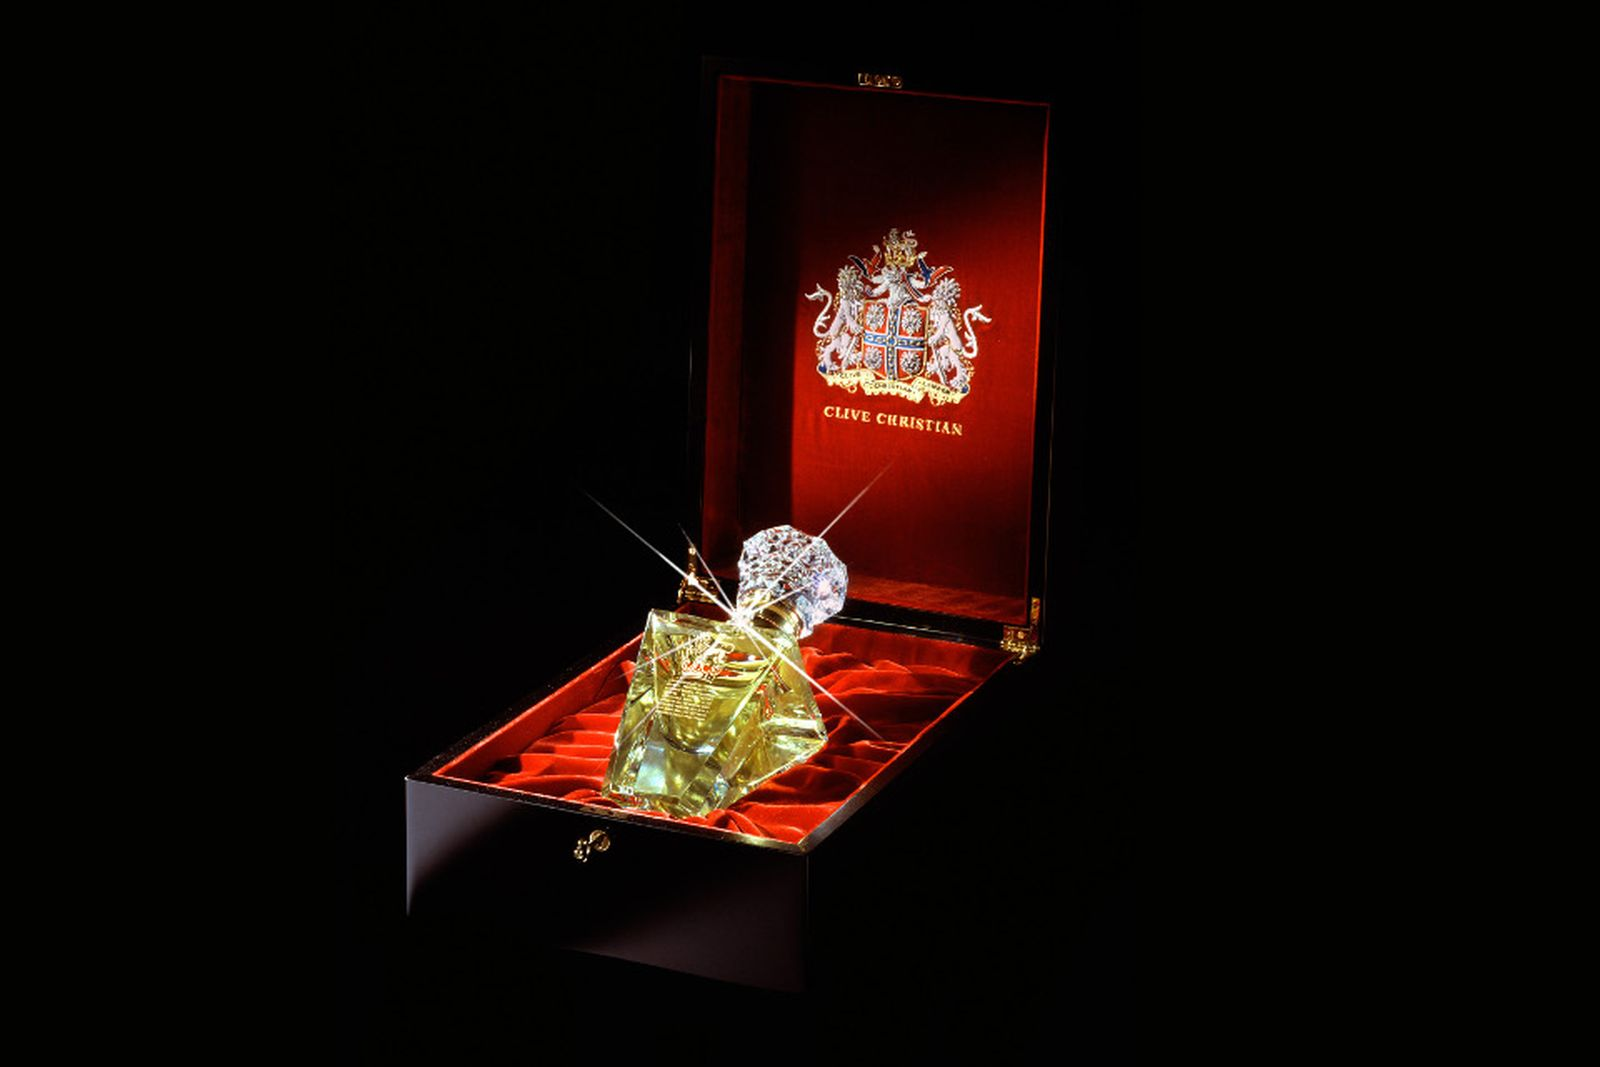 perfume brands clive christian Annick Goutal Arquiste CB I Hate Perfume